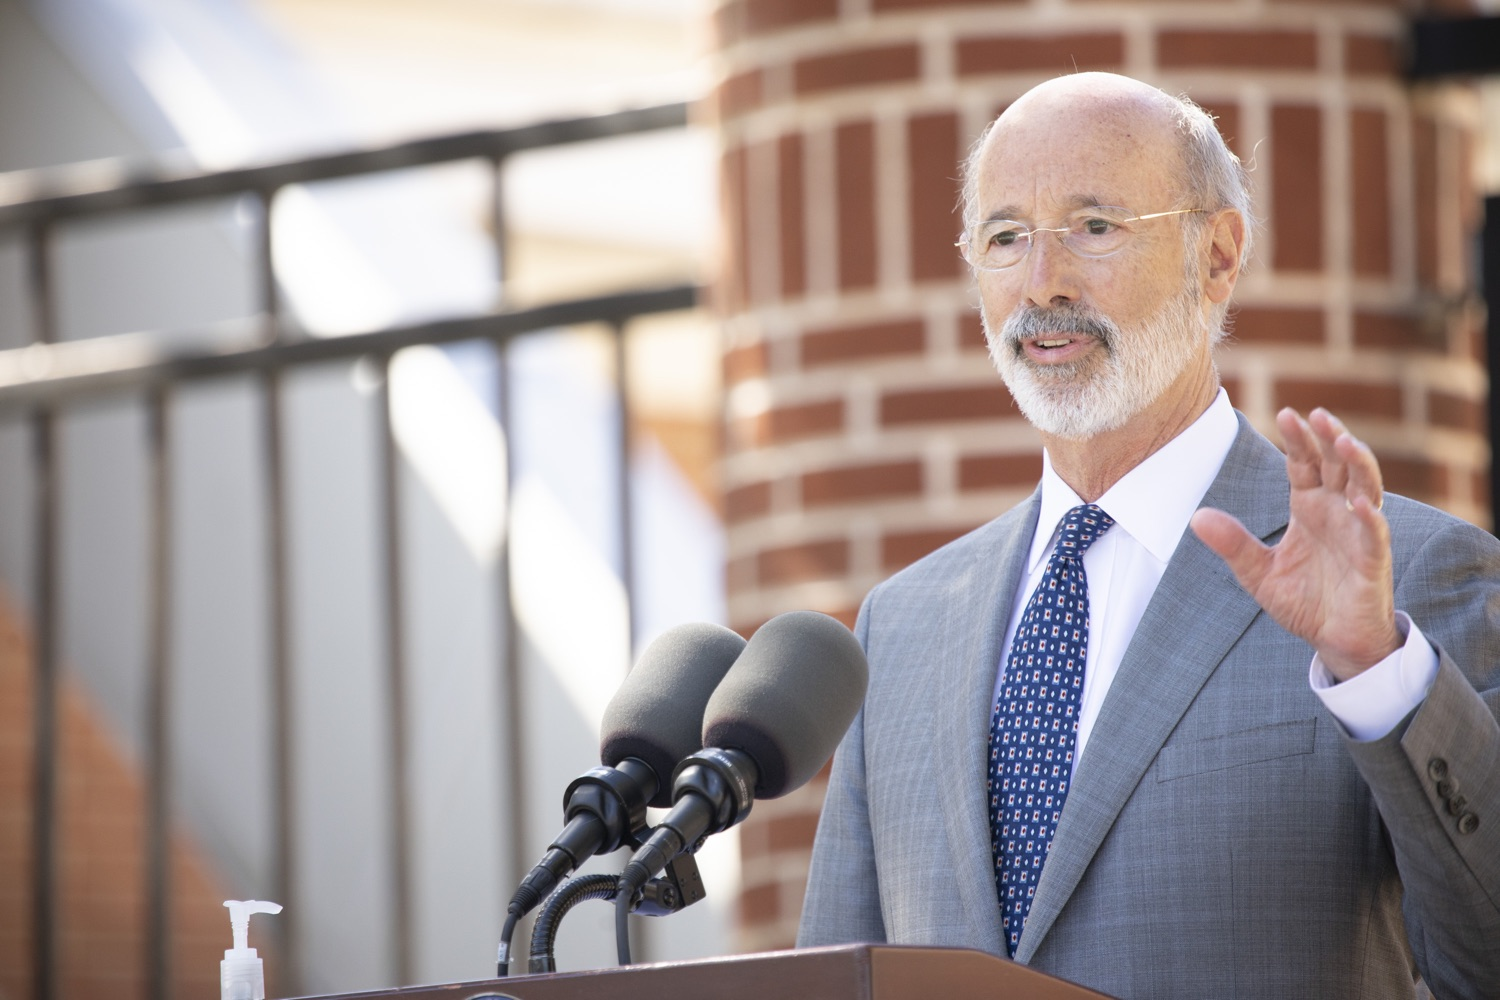 "<a href=""https://filesource.wostreaming.net/commonwealthofpa/photo/18306_gov_aca_dz_012.jpg"" target=""_blank"">⇣ Download Photo<br></a>Pennsylvania Governor Tom Wolf speaking with the press.  Governor Tom Wolf today amplified his call to protect the ACA and provide health care for all amid threats as the US Senate Judiciary Committee hearings to confirm conservative Judge Amy Coney Barrett to the Supreme Court begin next week and the pandemic ramps up across the country. York, PA  October 8, 2020"